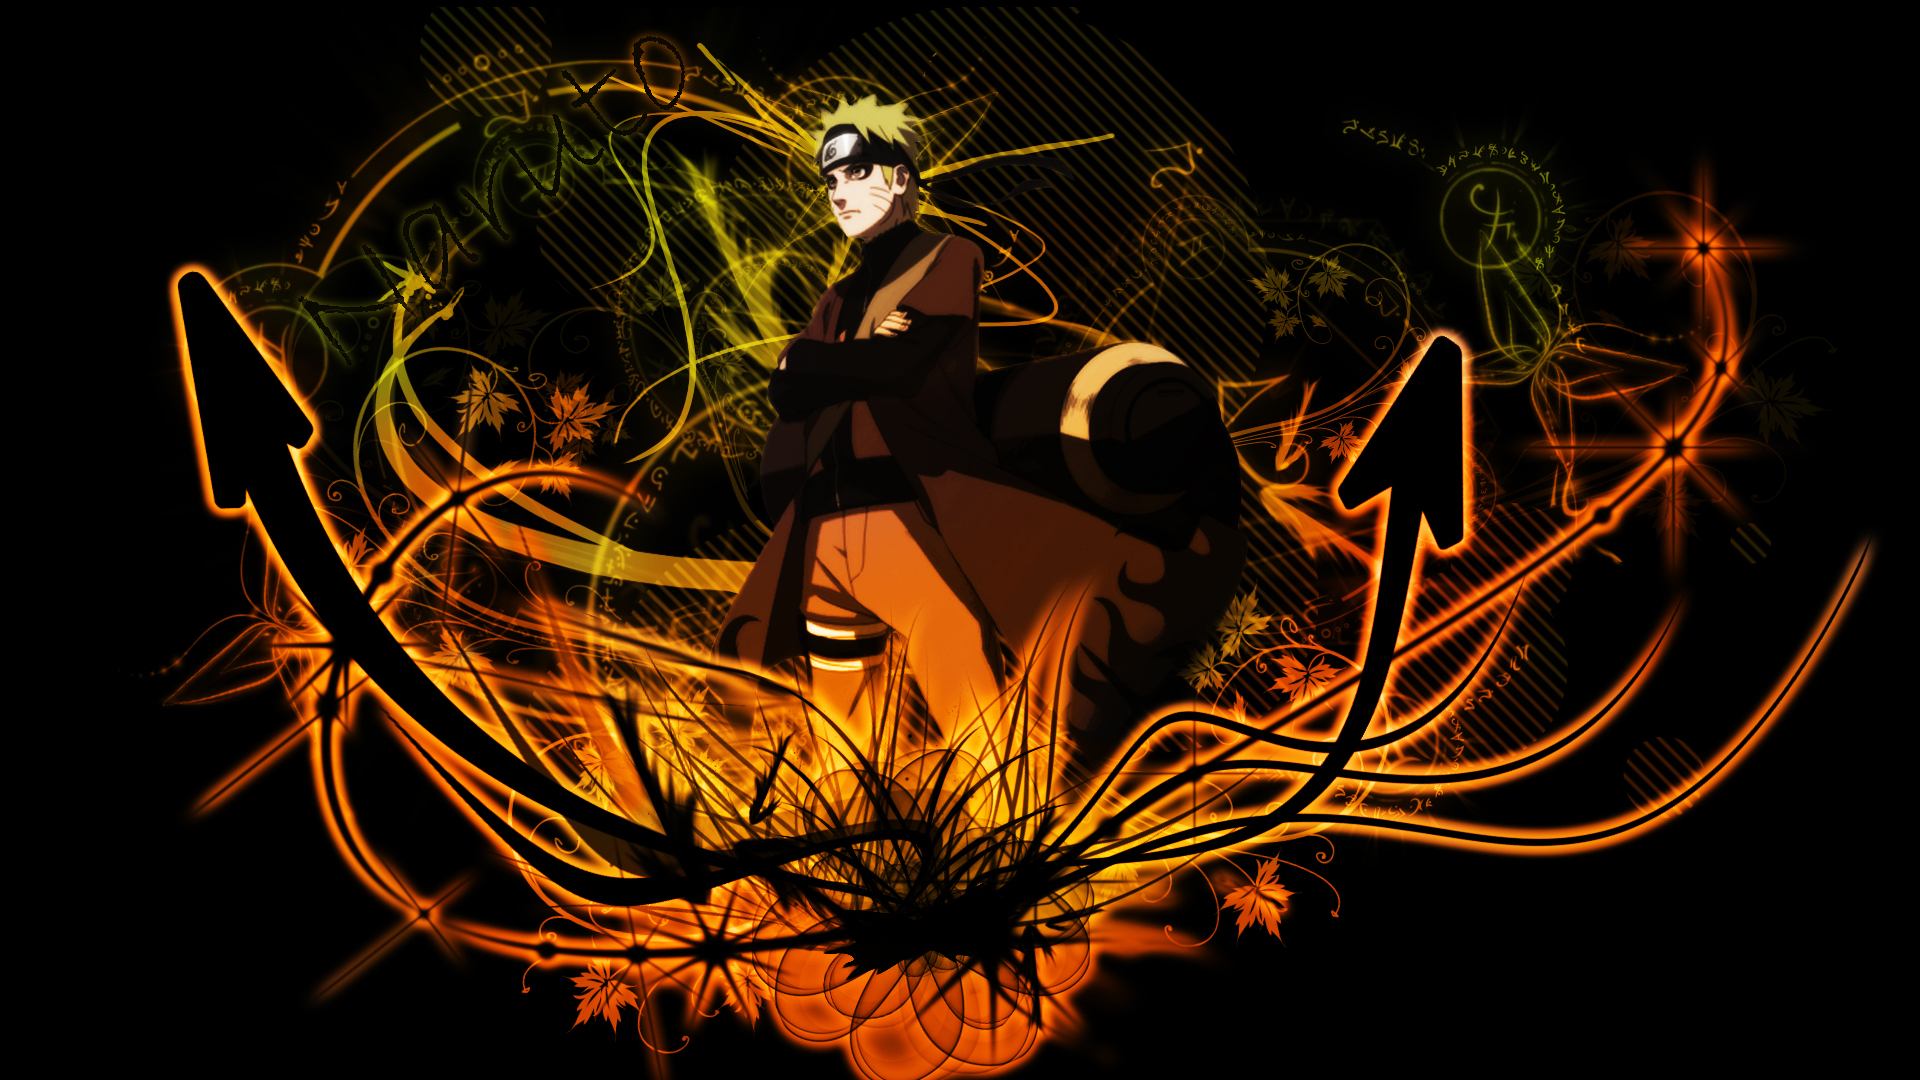 Cool Wallpaper High Quality Naruto - naruto-HD-wallpapers-a20  You Should Have_626850.jpg